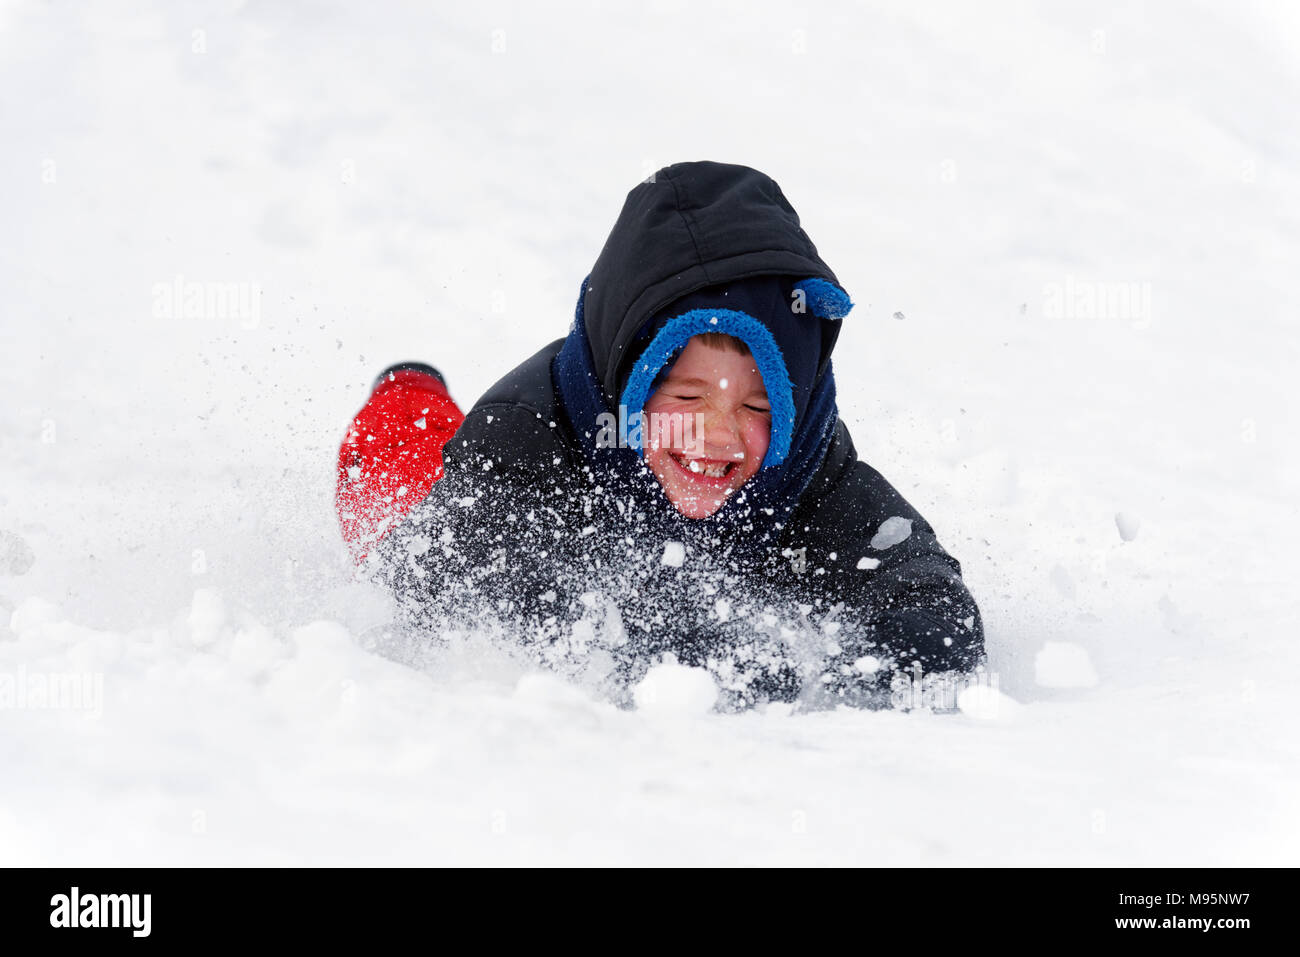 A little boy (5 yr old) grimacing as snow goes into his face as he slides face first in the snow - Stock Image